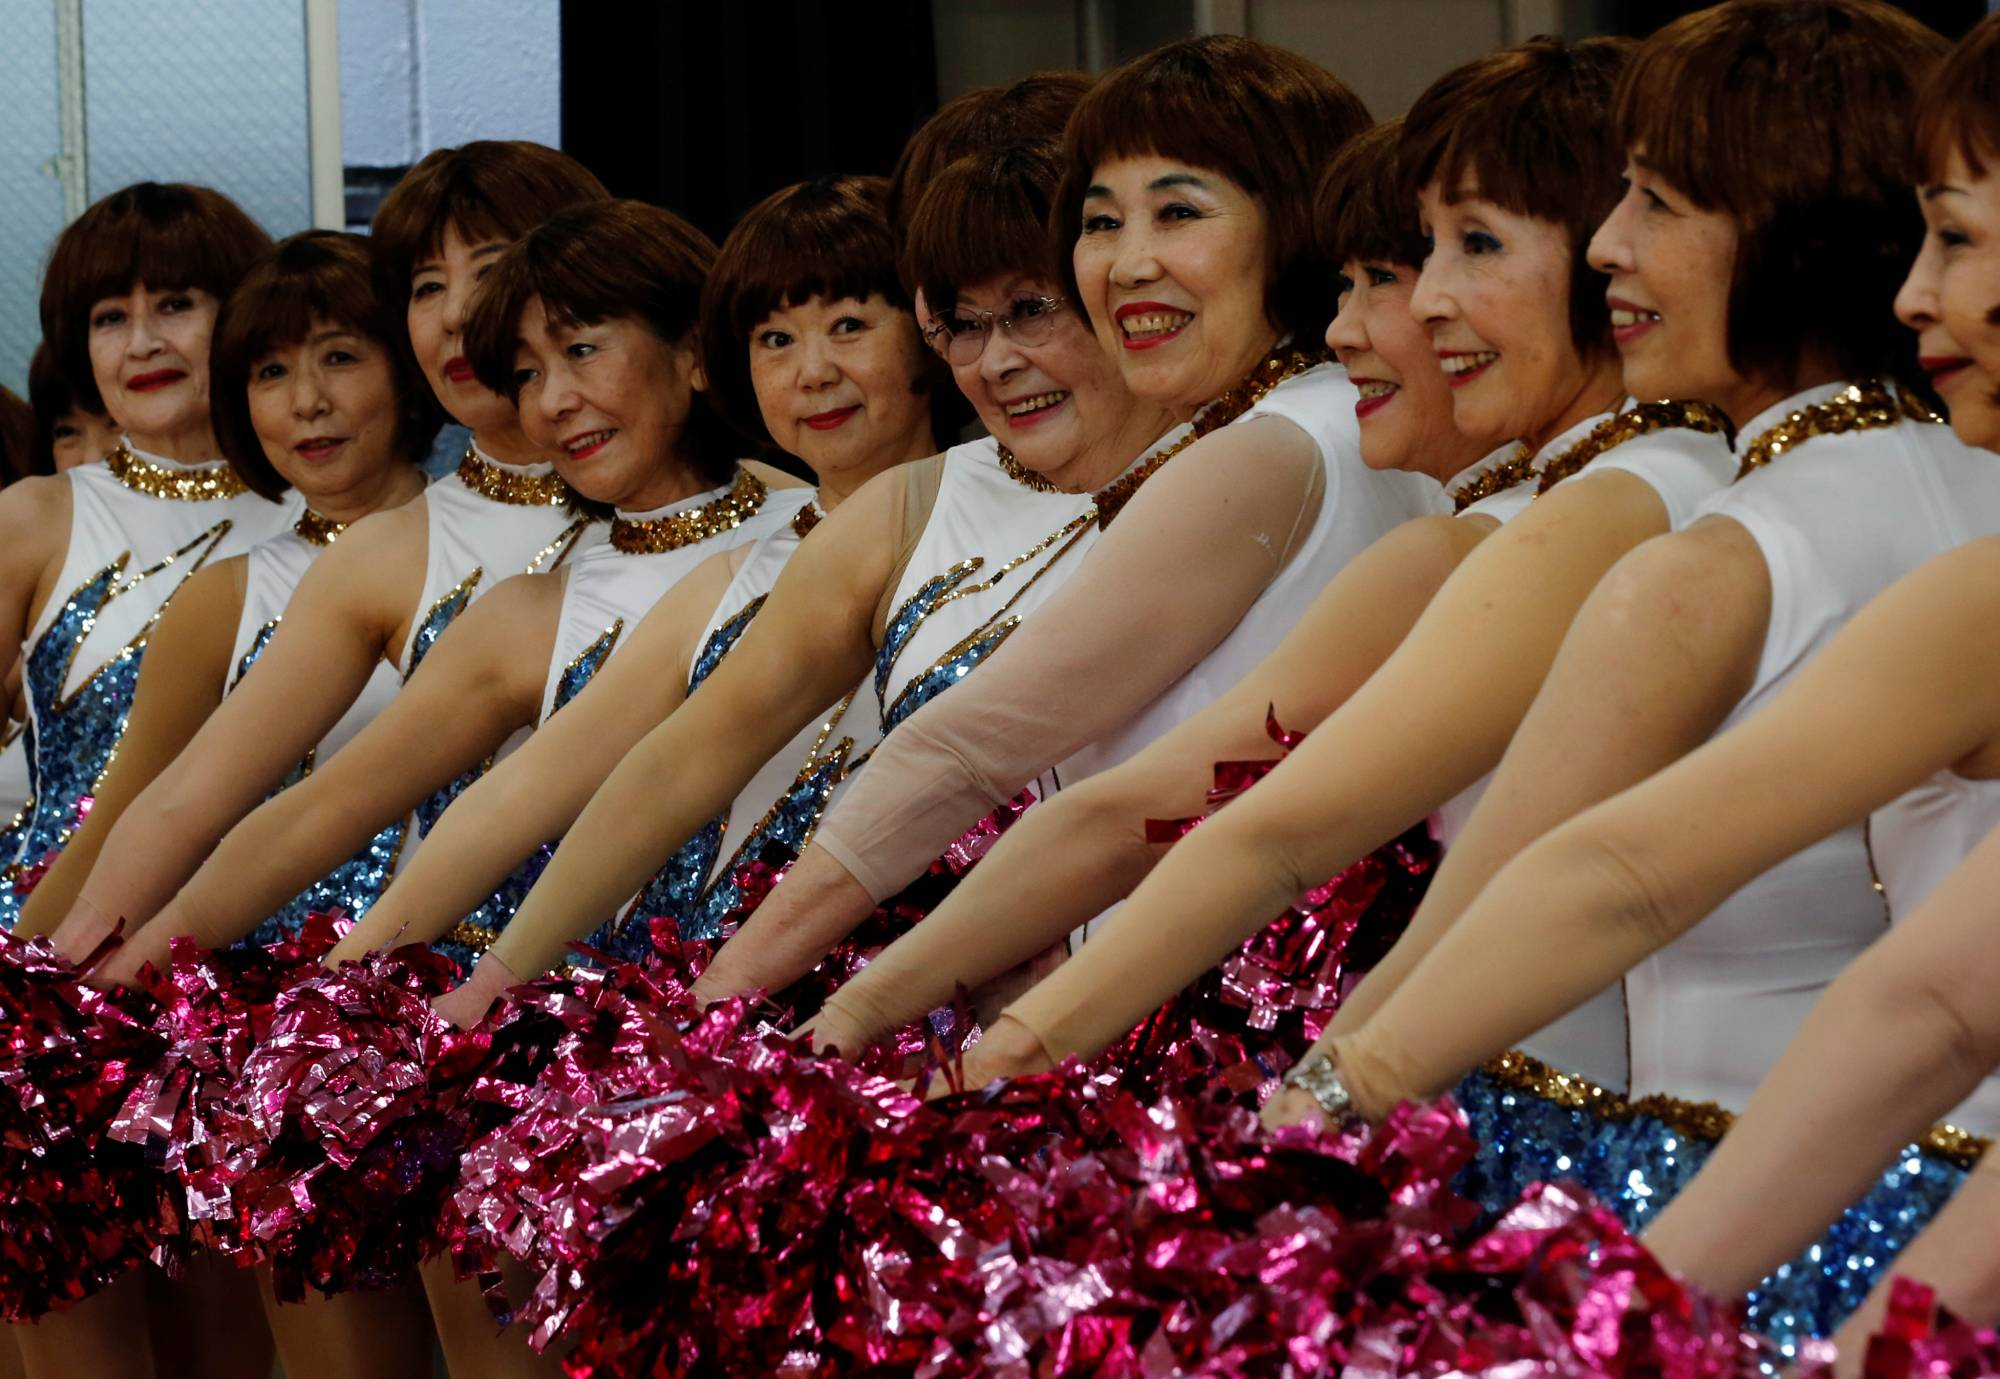 Members of cheer squad Japan Pom Pom post for commemorative photos before filming a dance routine for an online performance in Tokyo, Japan, April 12.   REUTERS